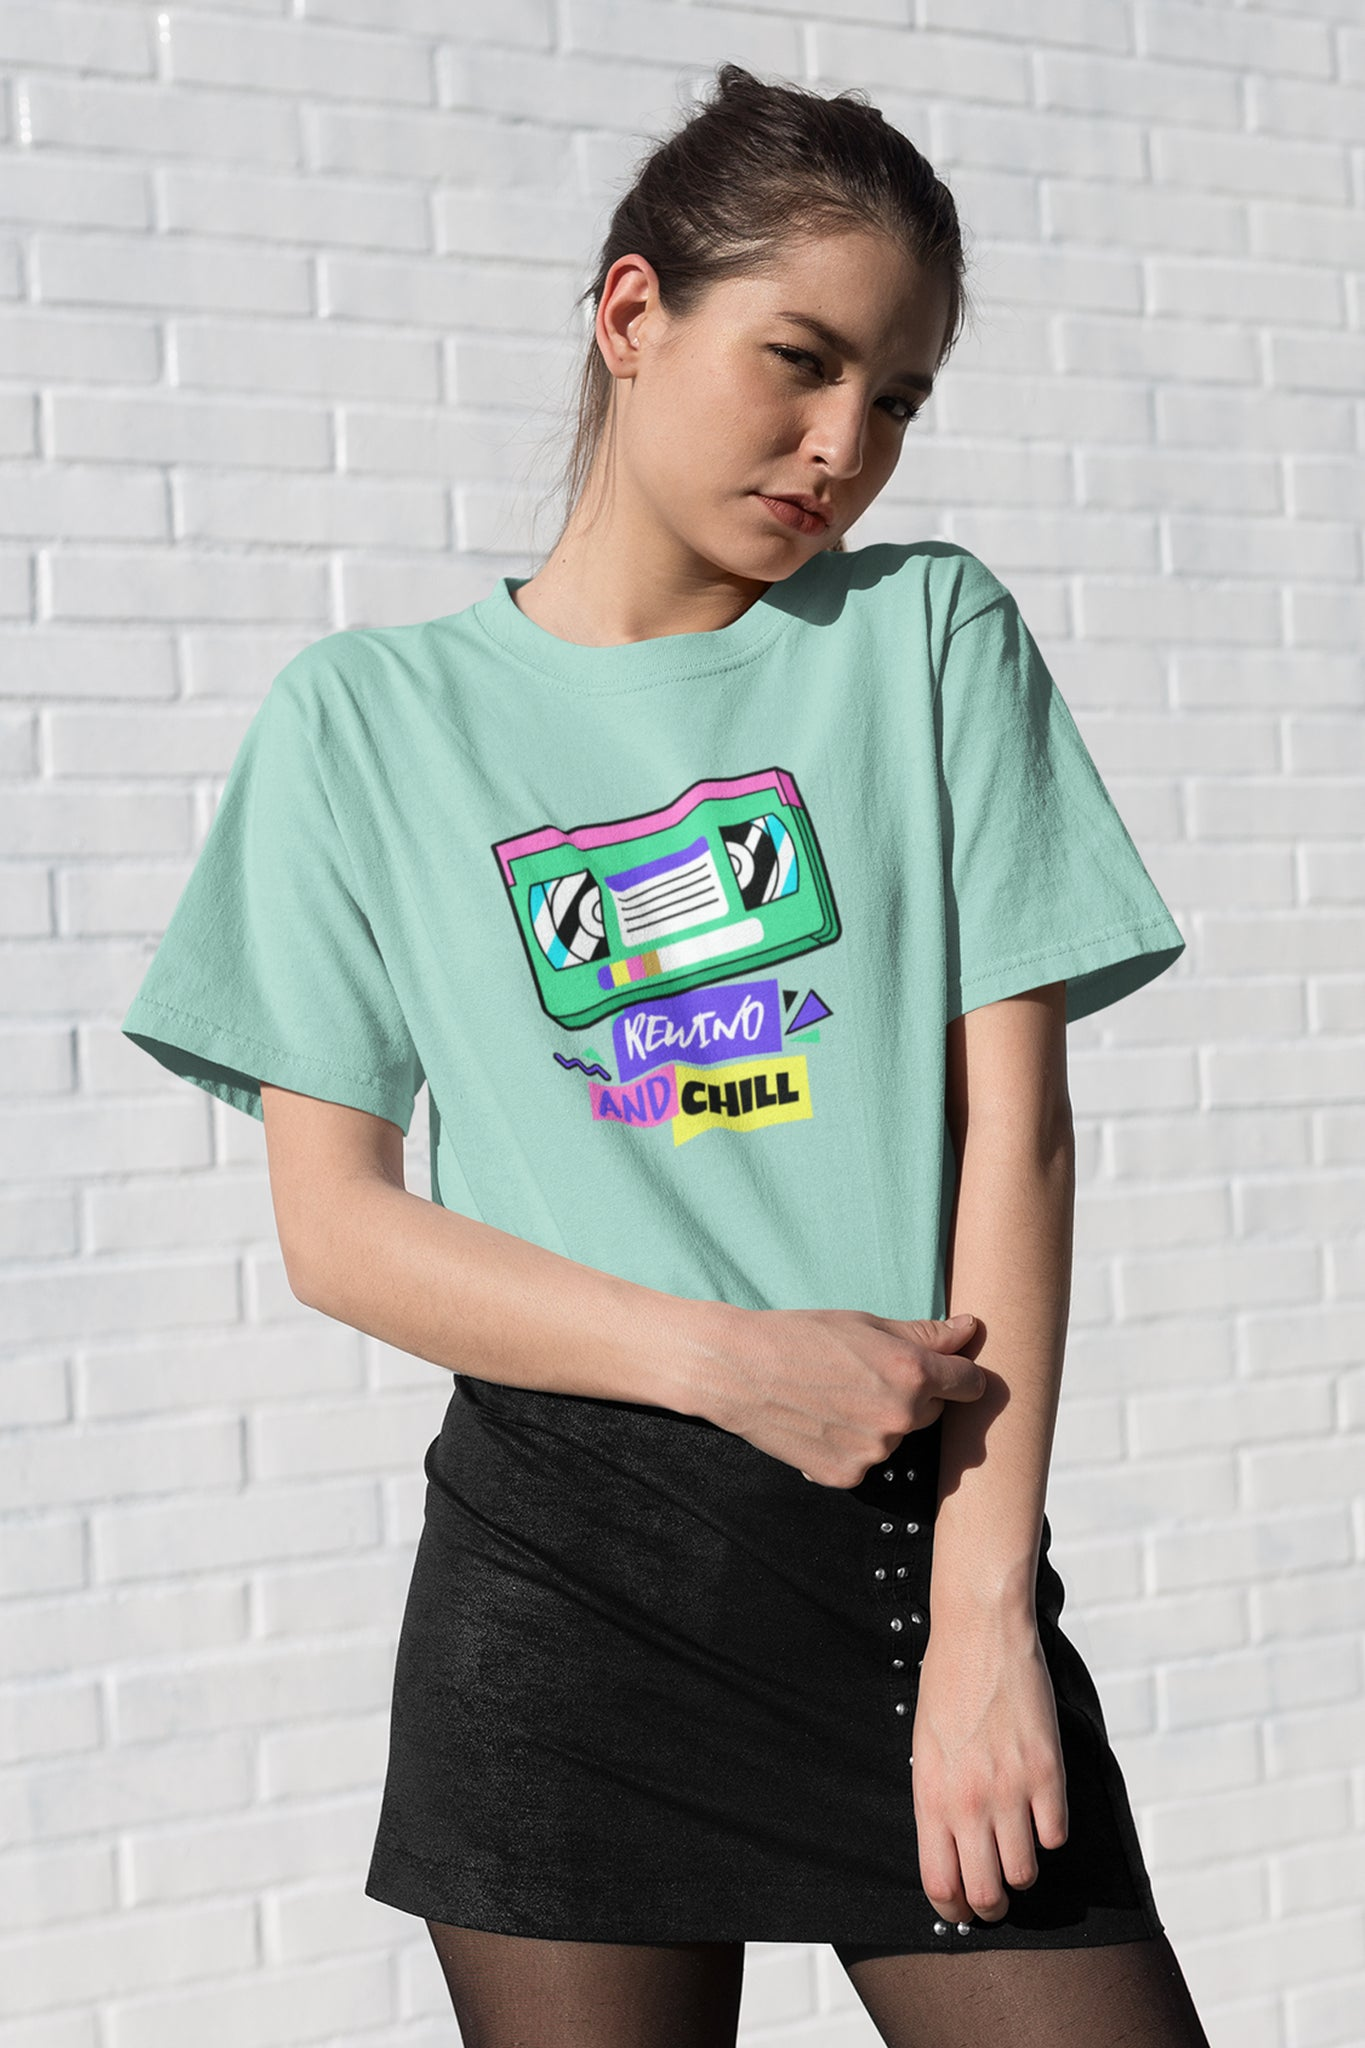 Rewind and Chill Graphic Tee